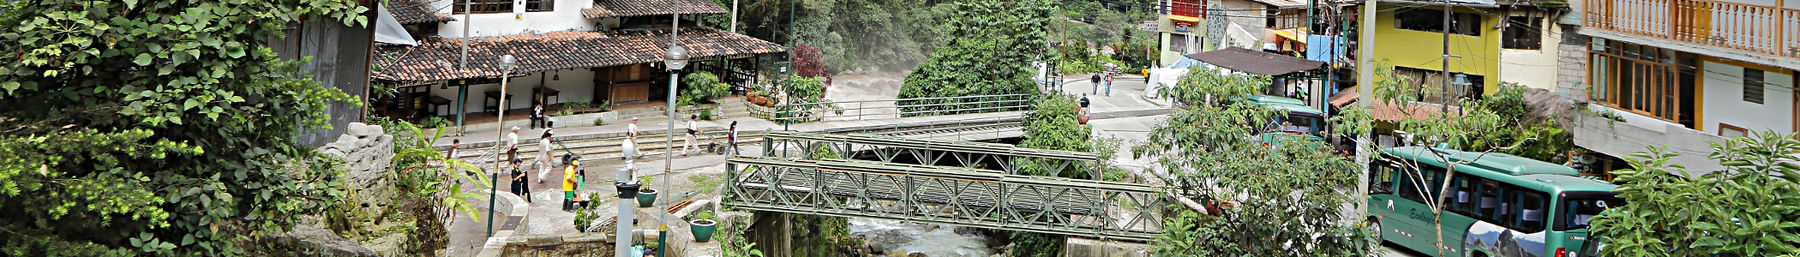 Aguas Calientes banner River bank 2.jpg